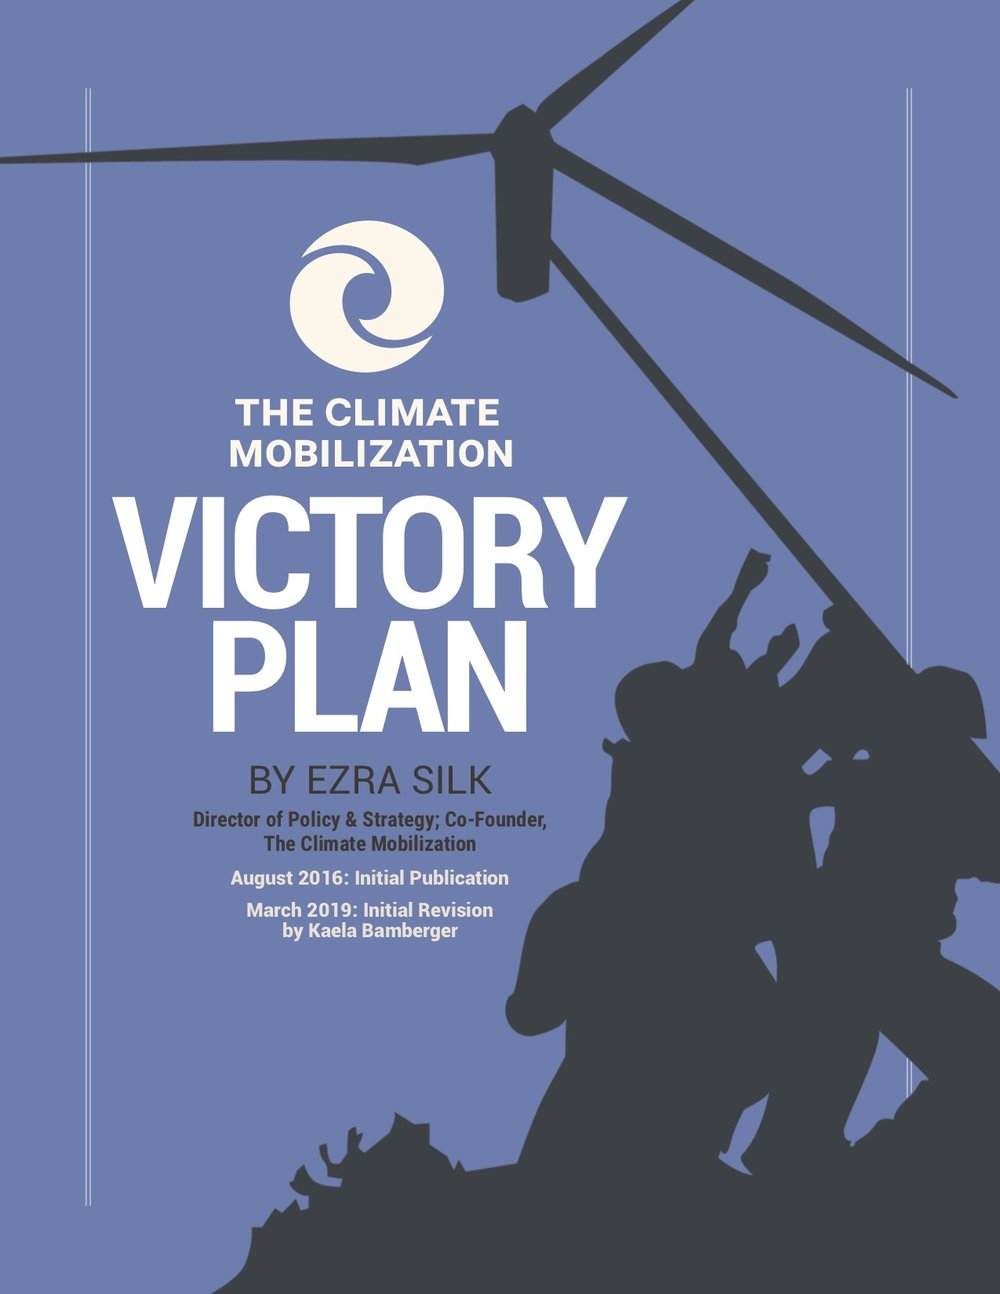 Read the full    Victory Plan    explaining how the U.S. could eliminate net greenhouse gas emissions at wartime speed, contribute to a global effort to restore a safe climate, and reverse ecological overshoot through massive WWII-scale mobilization.